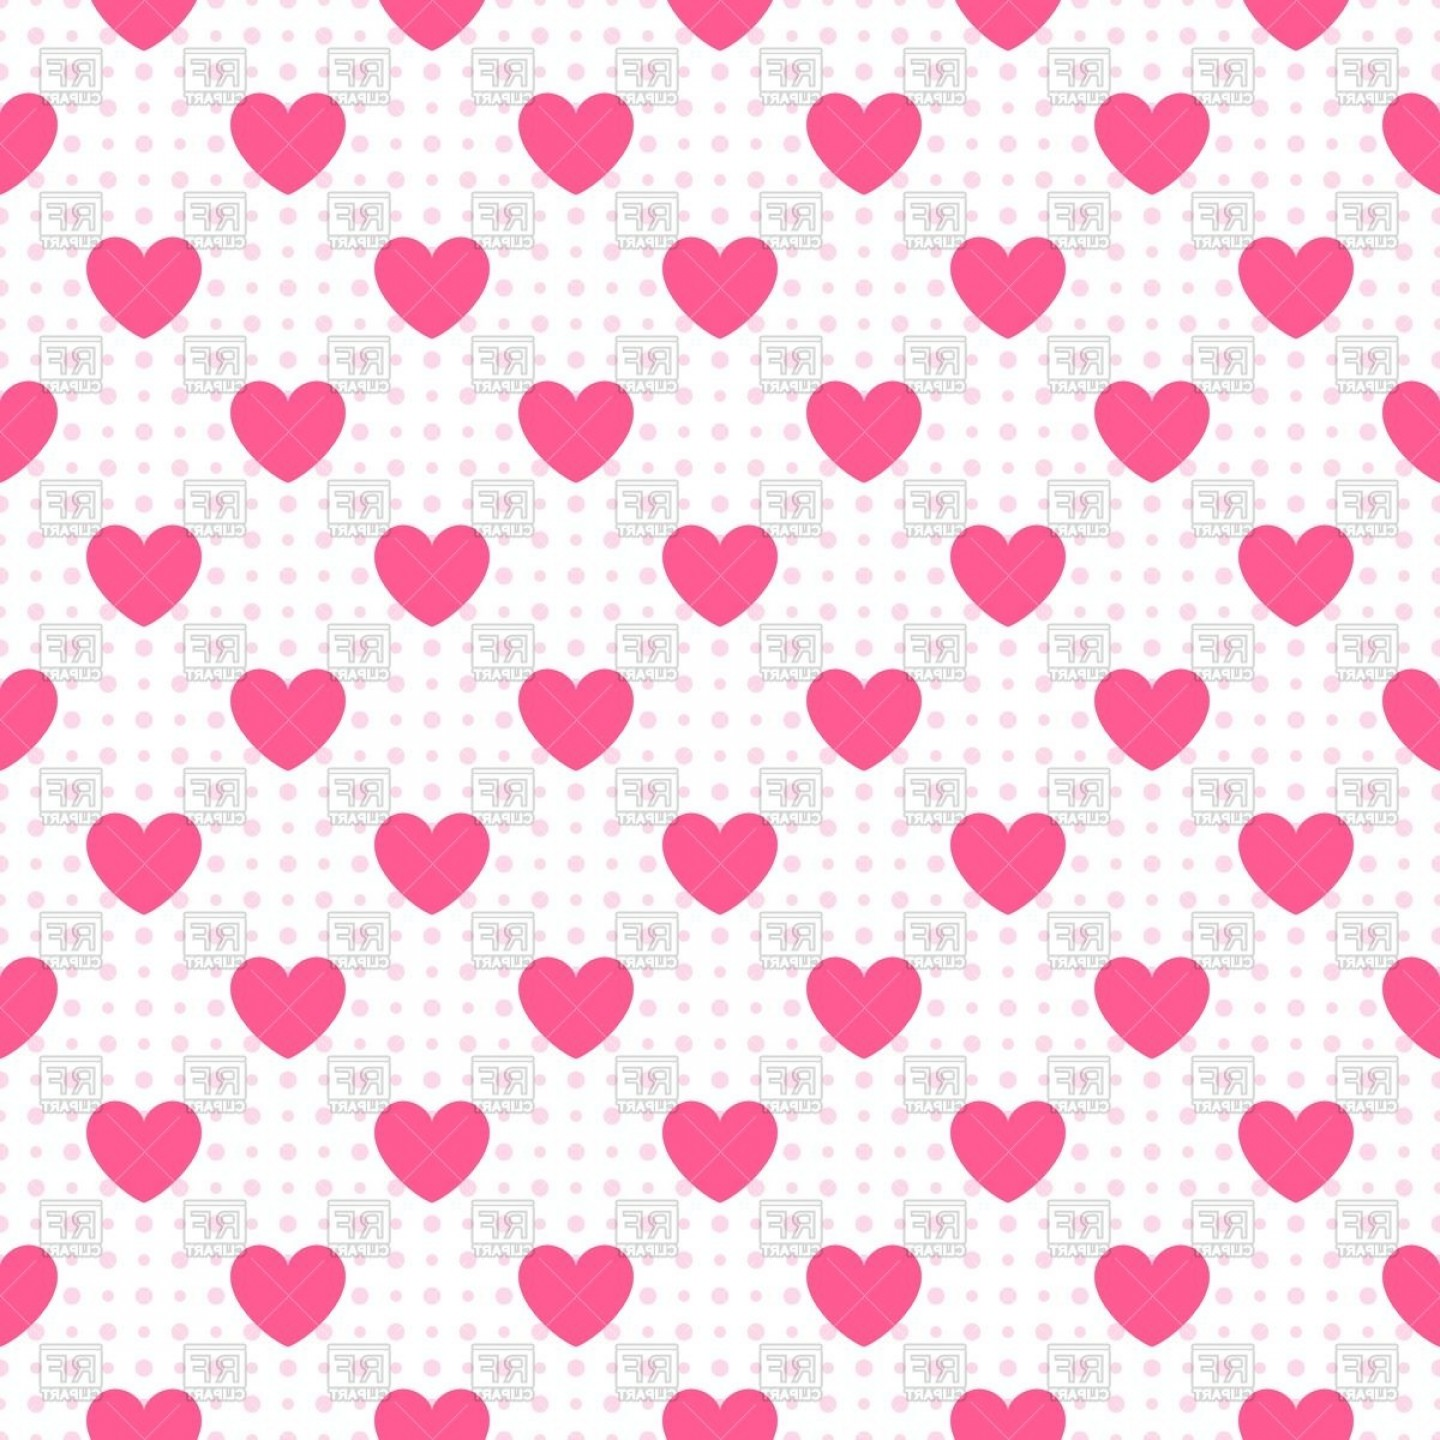 Seamless Pattern Of Hearts On Polka Dot Background Vector Clipart.